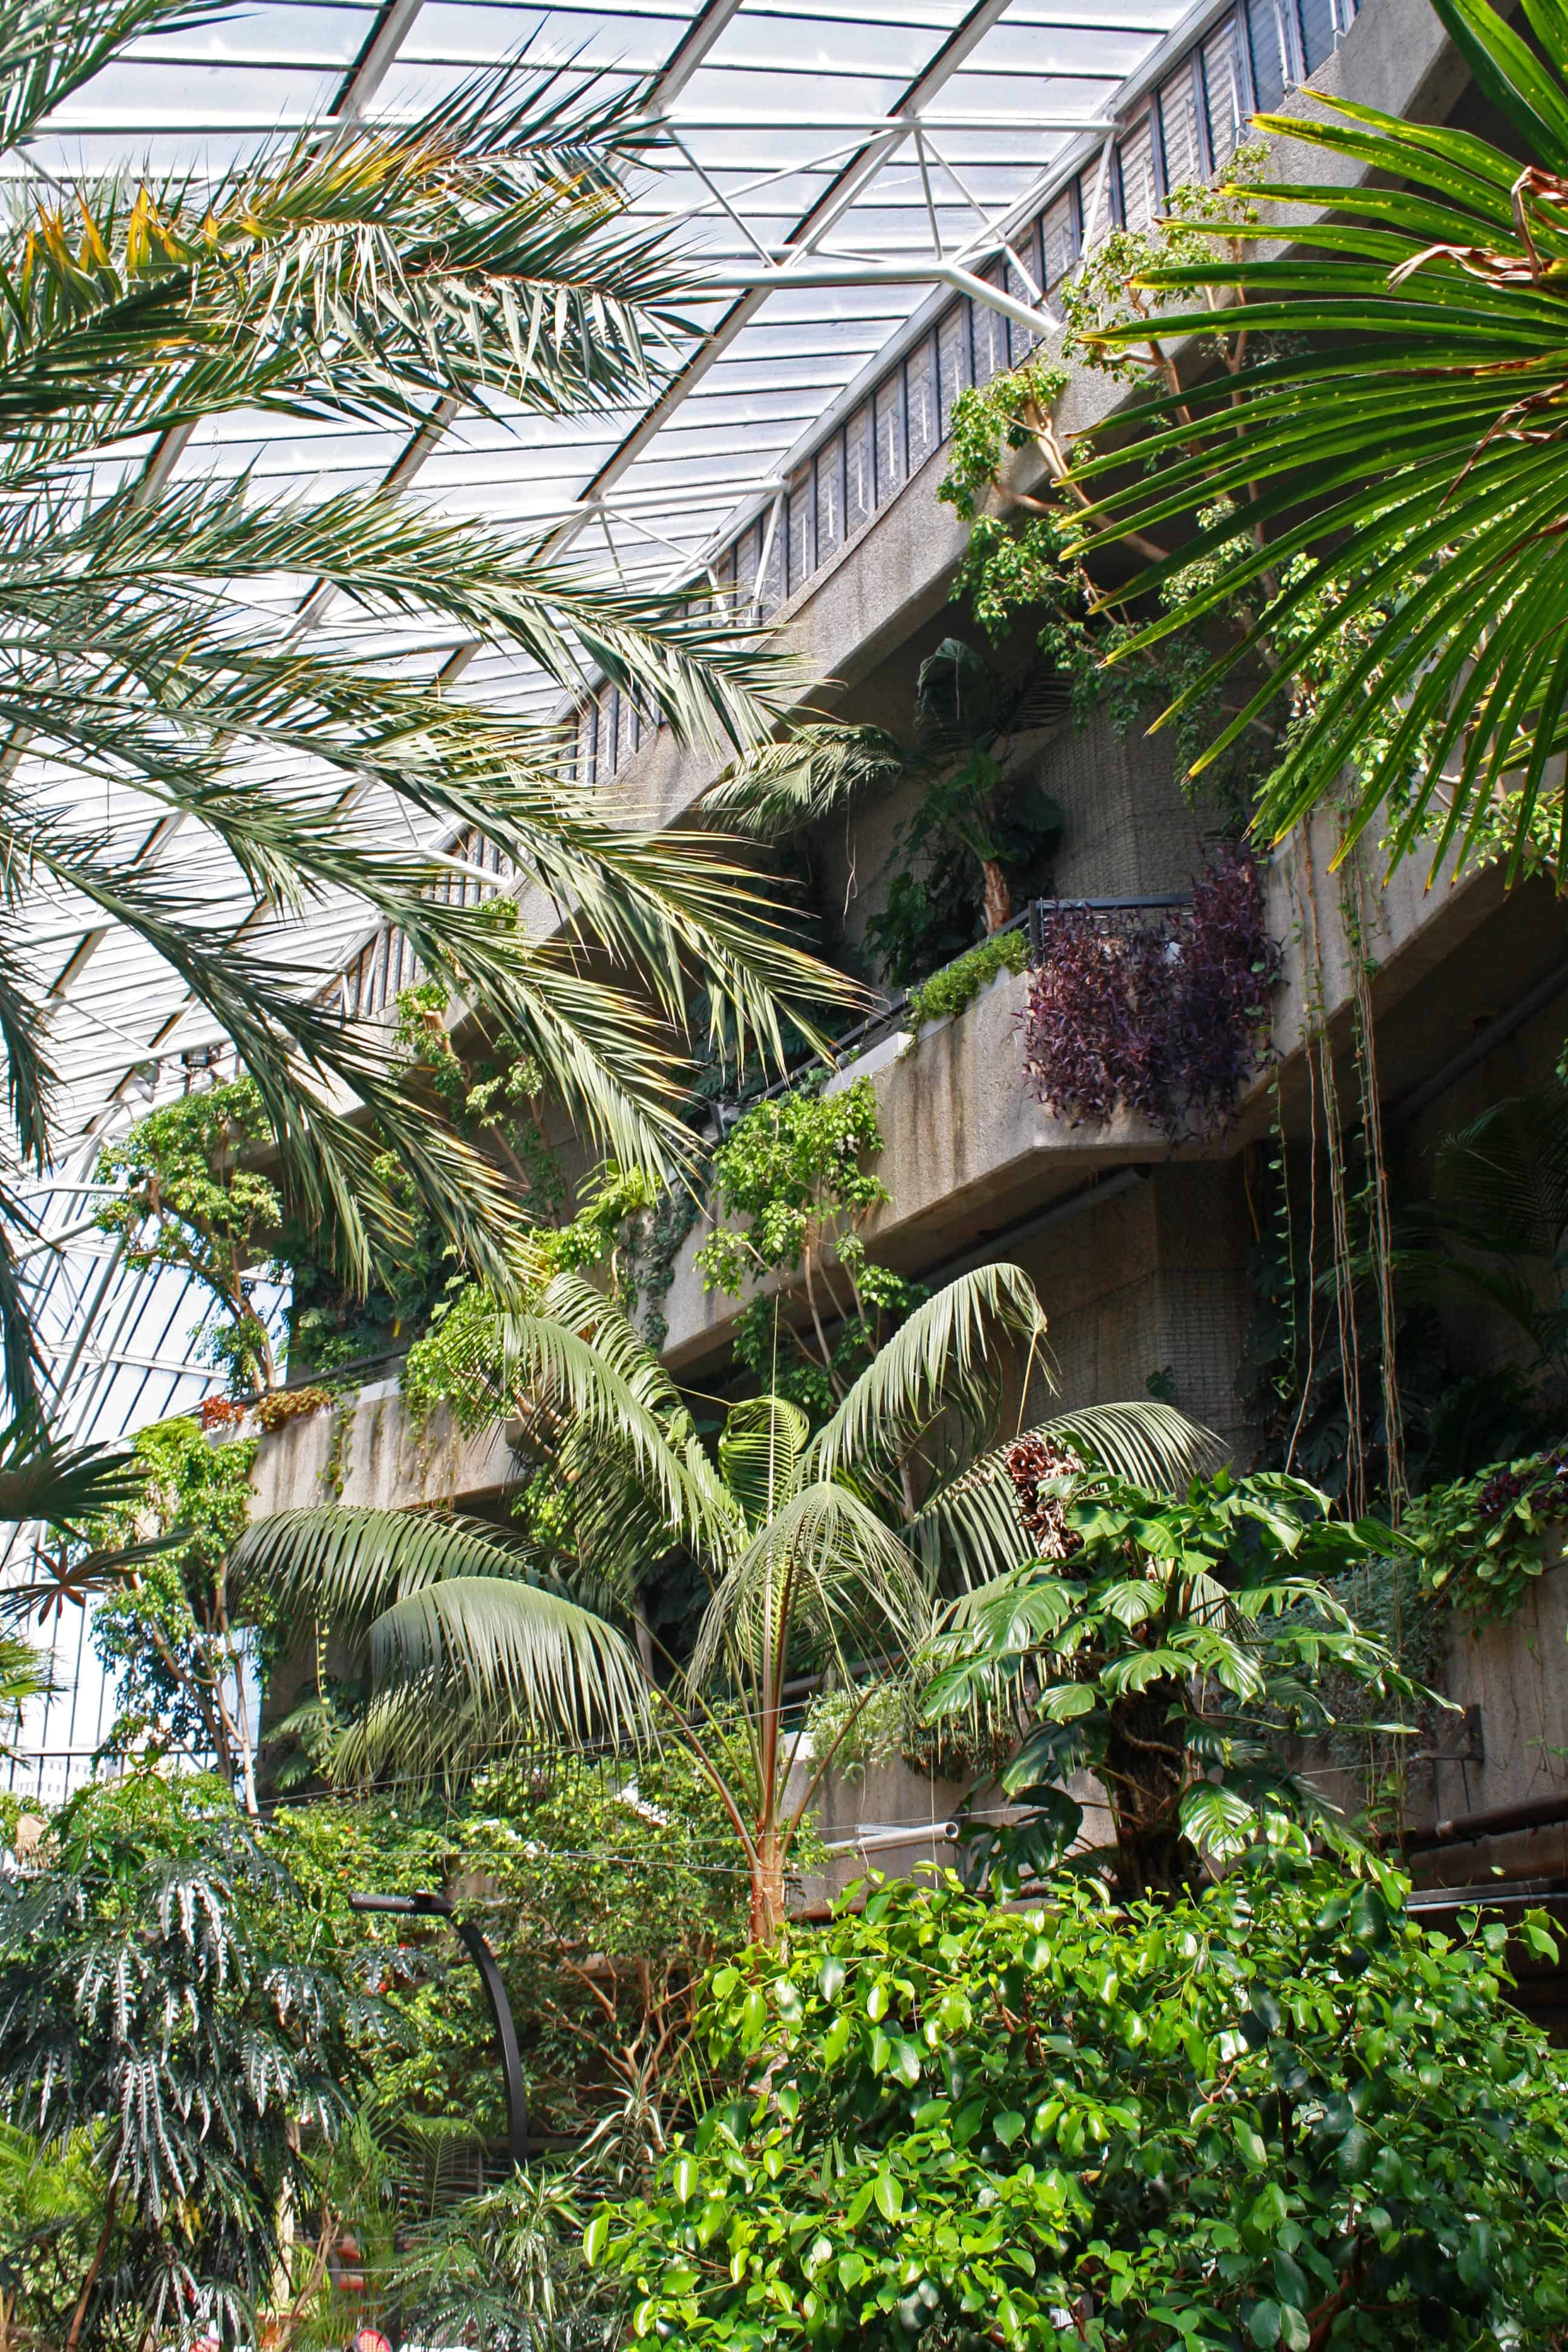 View at the entrance of Barbican Conservatory, London